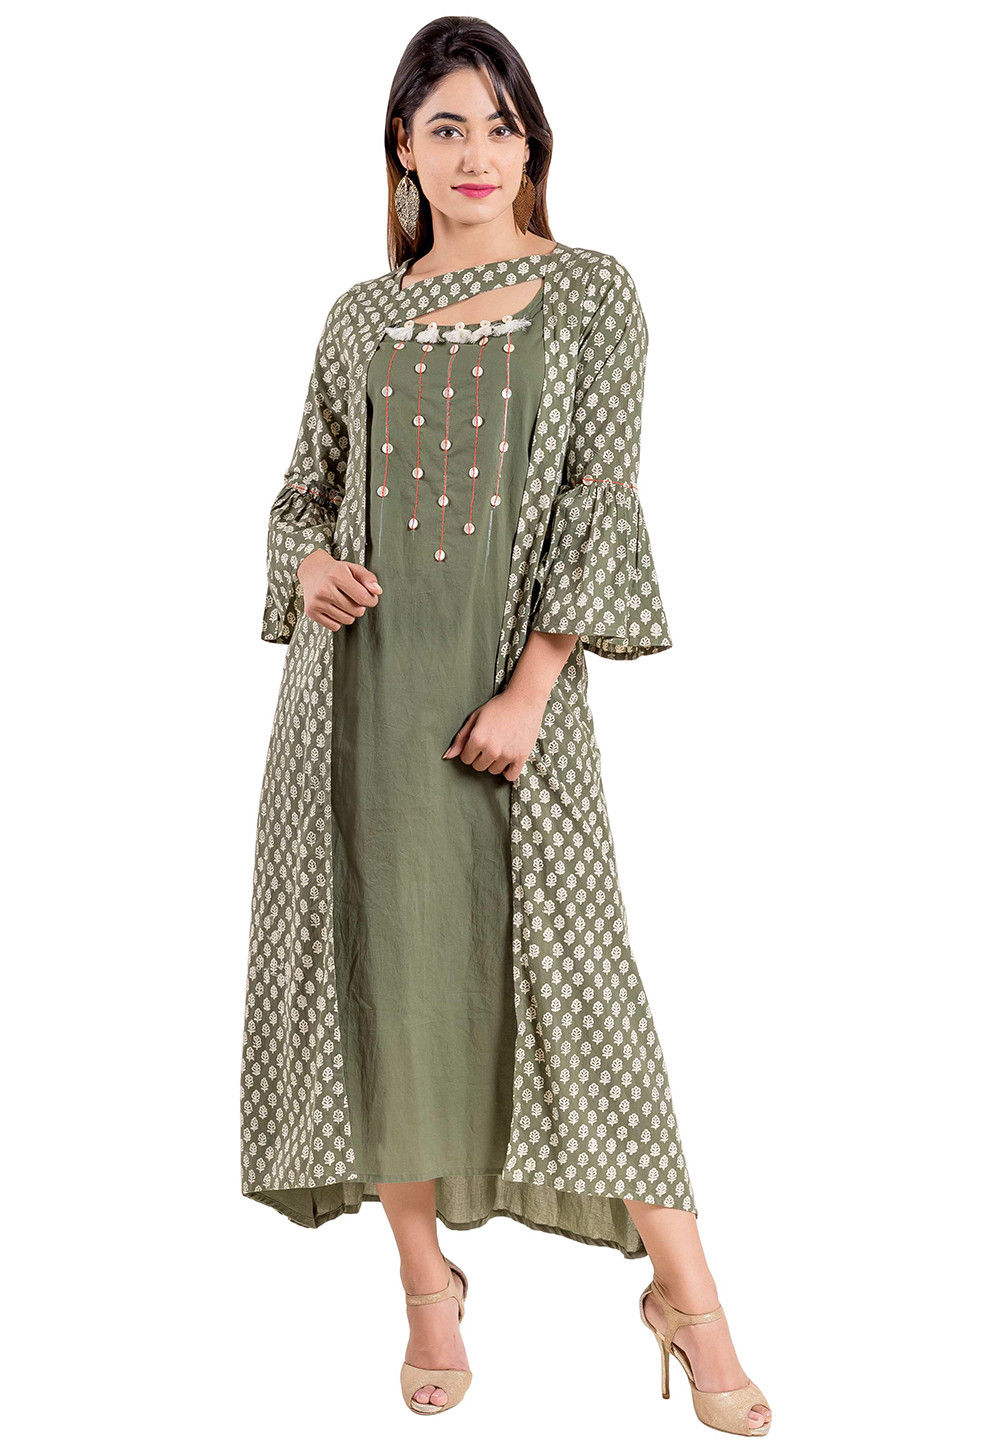 Block Printed Cotton Kurta in Dusty Olive Green